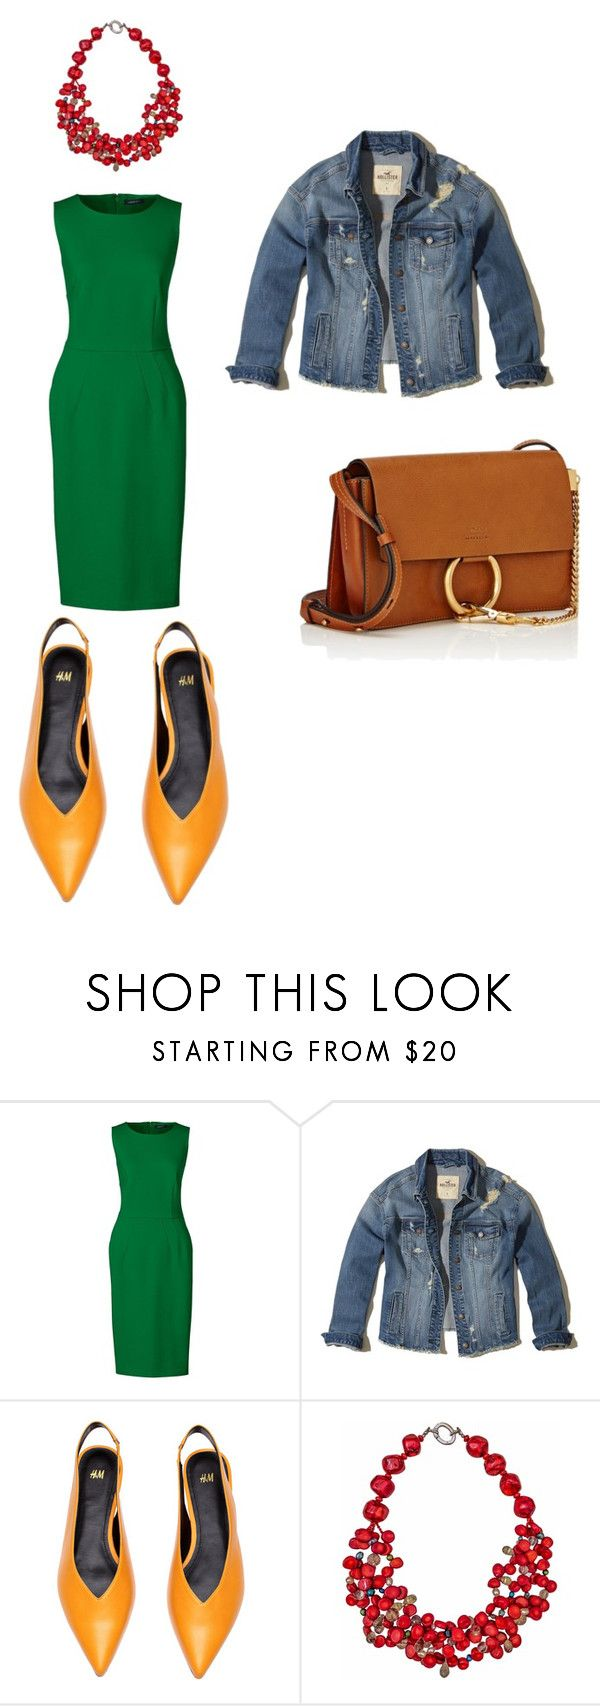 """Weering set"" by sofiya-abdulaeva on Polyvore featuring мода, Lands' End, Hollister Co., Plumeria Exclusive London, Chloé и plus size dresses"